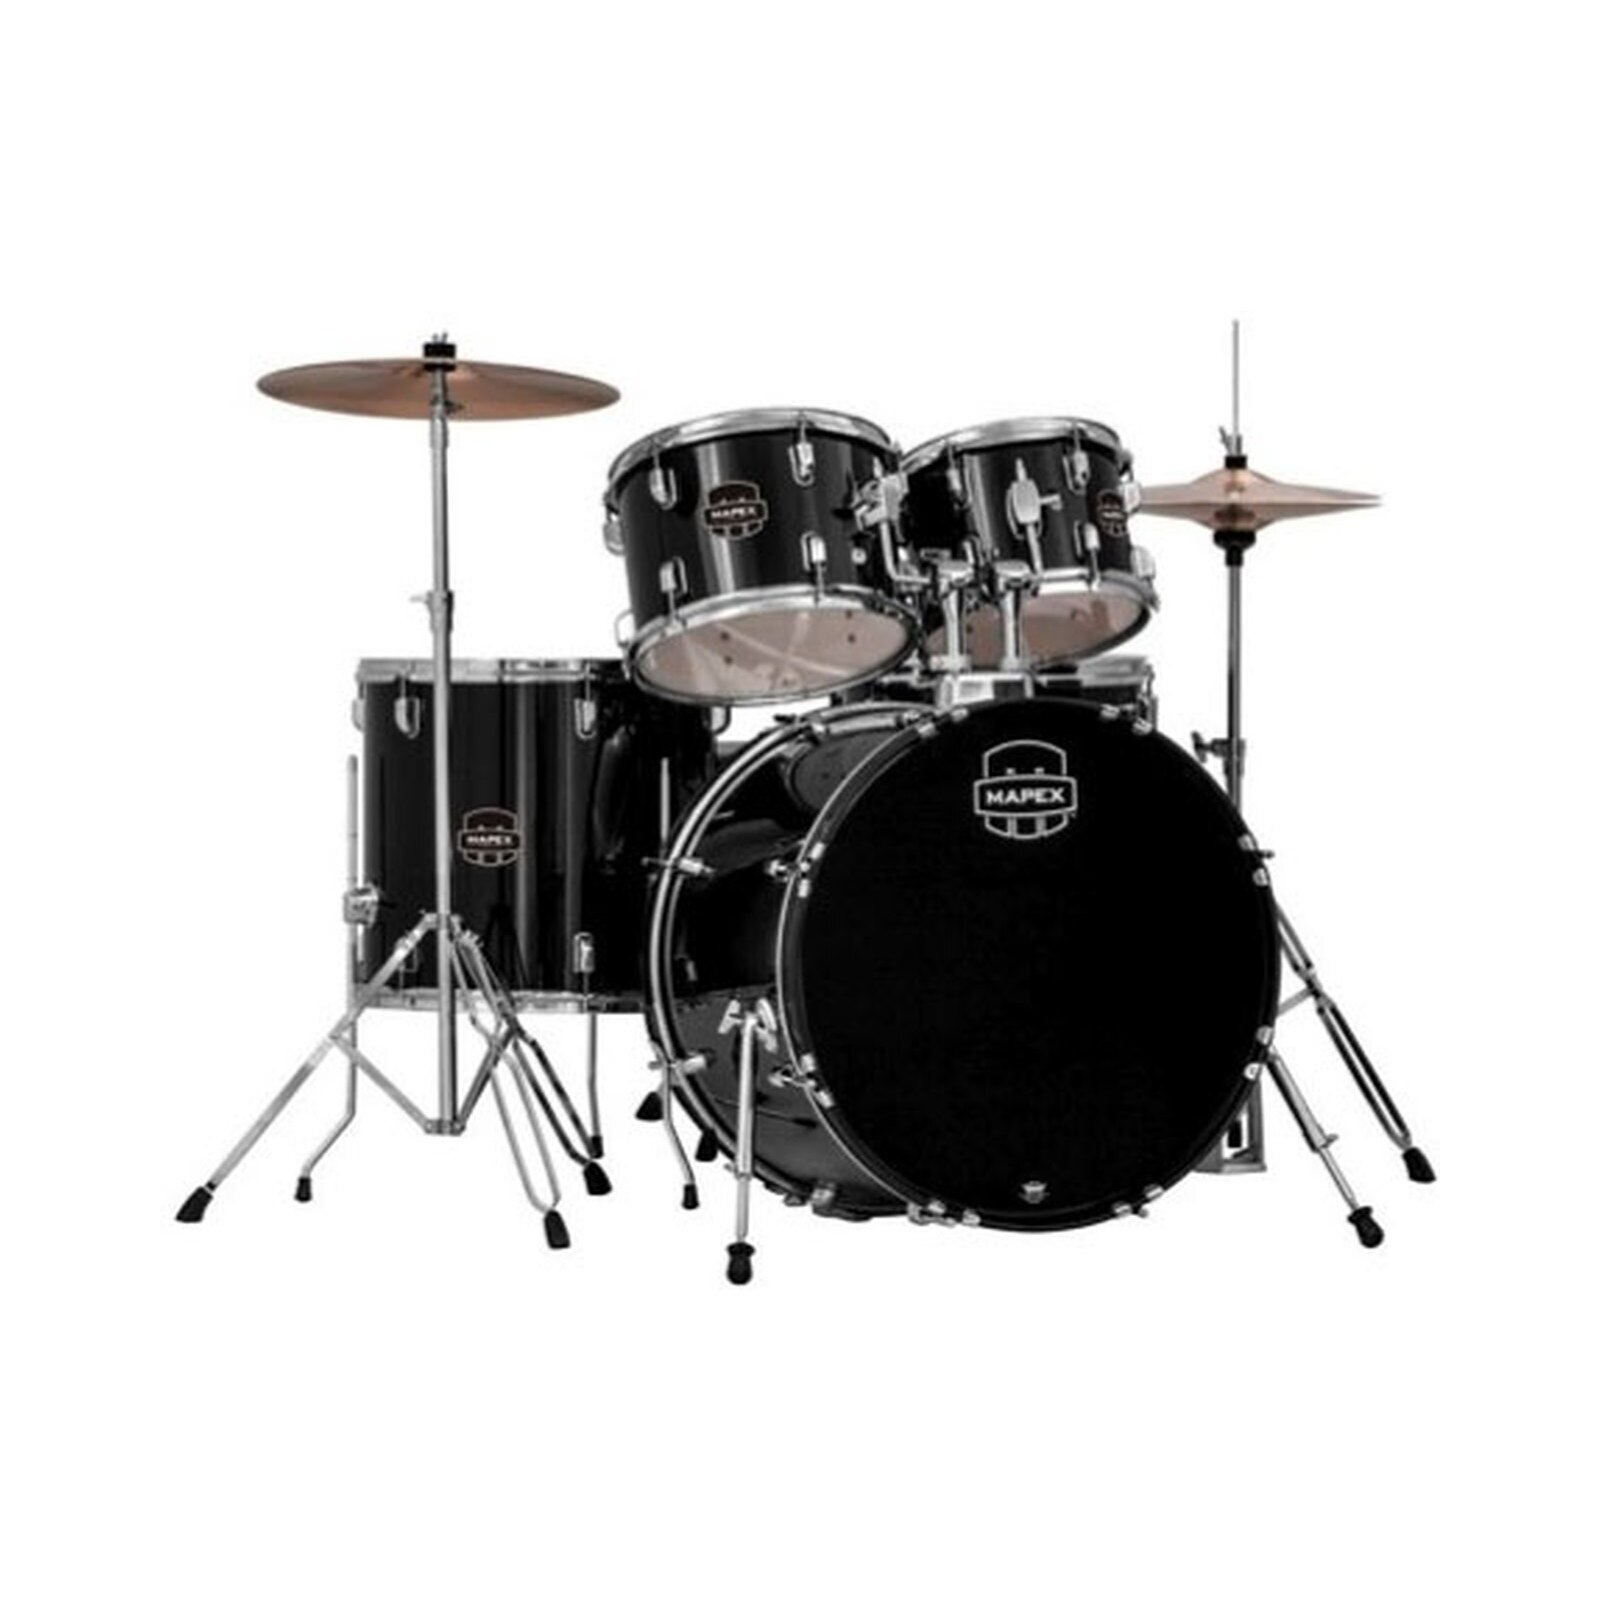 Mapex PDG5044T Prodigy Drum Kit with Cymbals & Throne Black